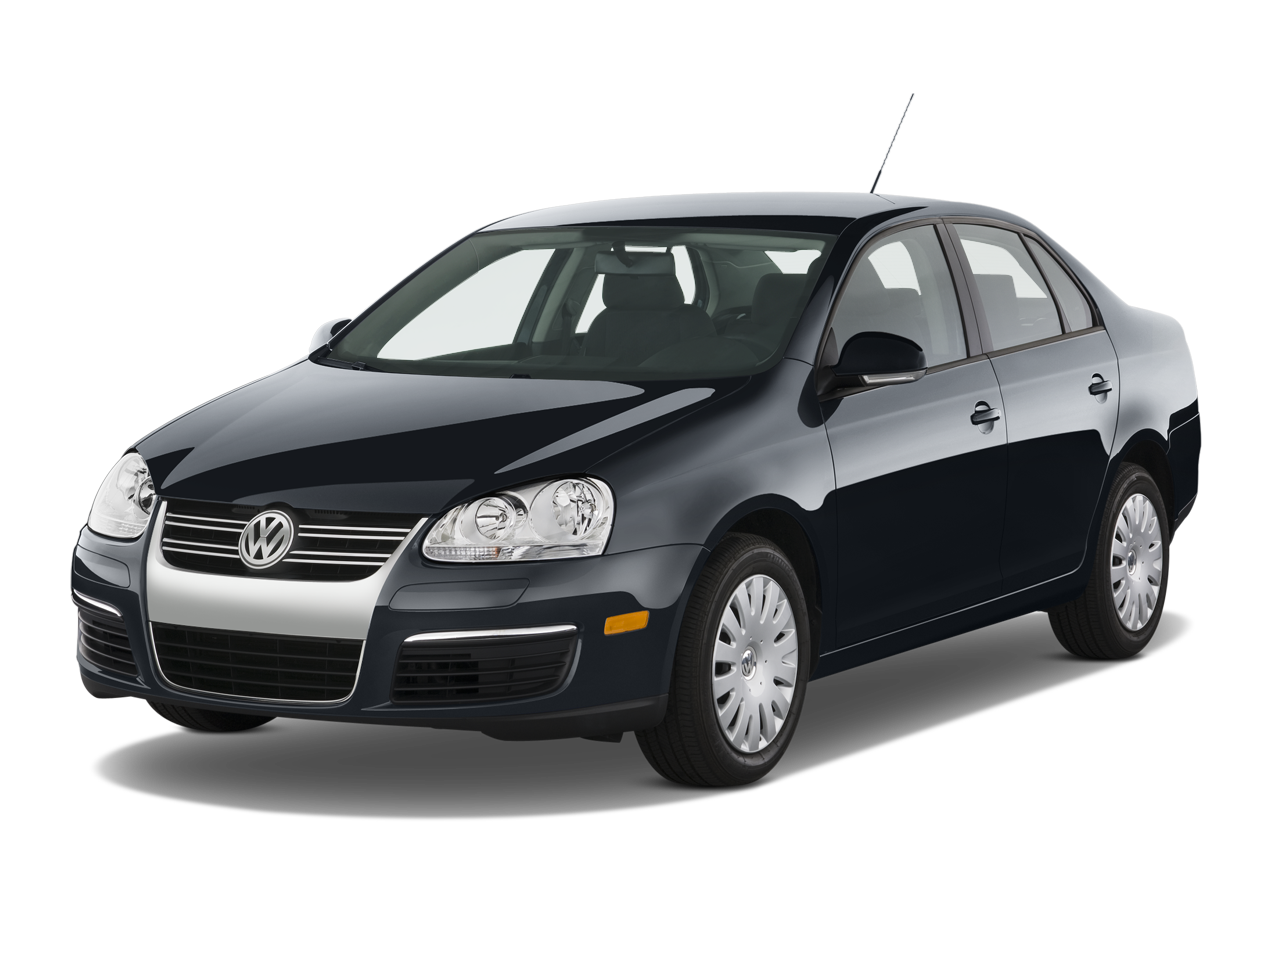 2008 volkswagen jetta clean diesel new car truck and suv road tests and reviews automobile. Black Bedroom Furniture Sets. Home Design Ideas